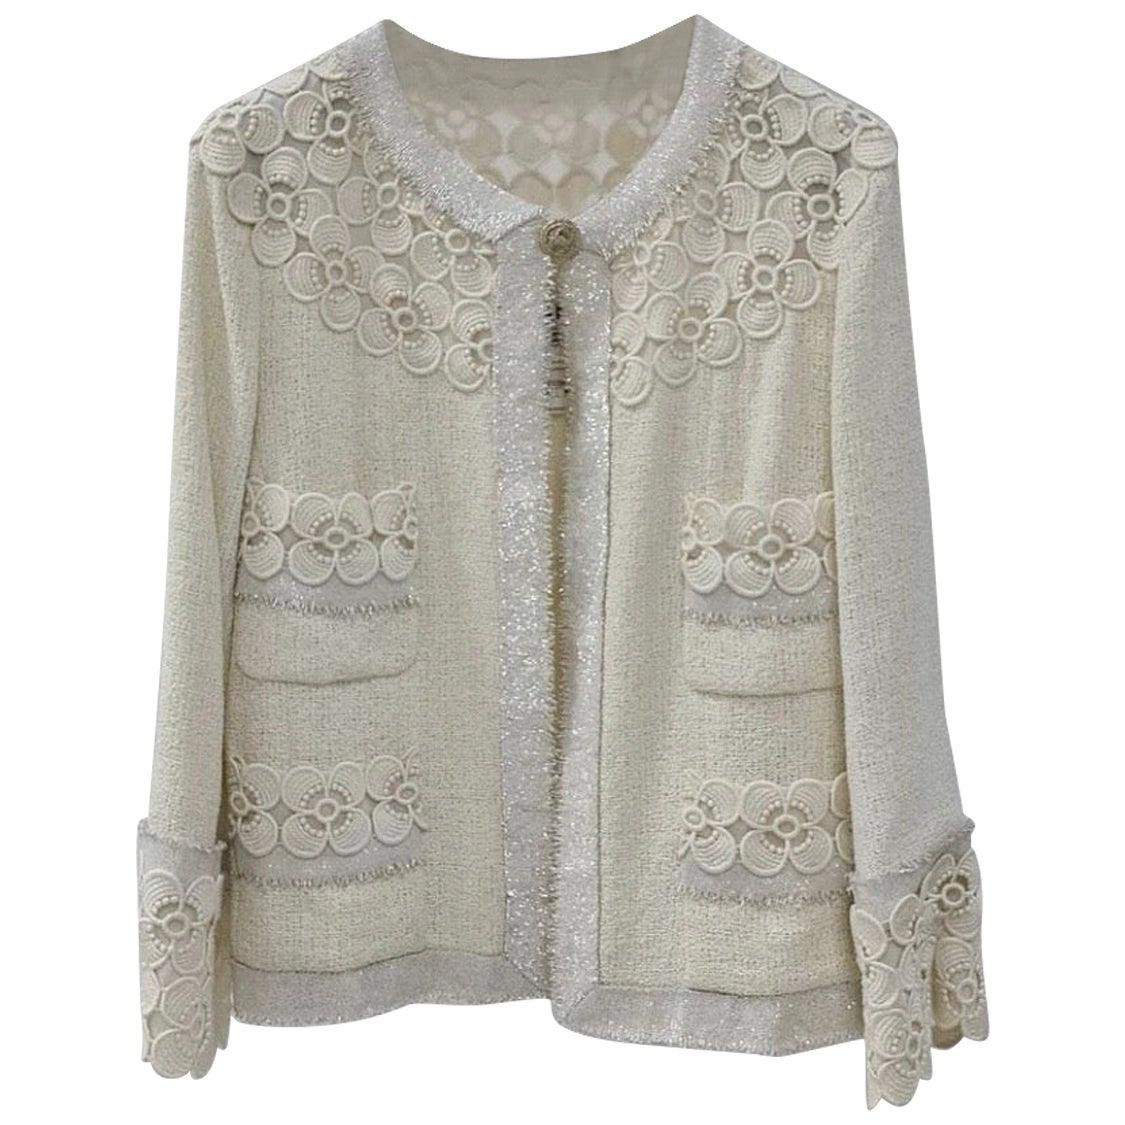 Chanel 11C Ecru Tweed Lace Camellia Jacket  Gold CC logo Button